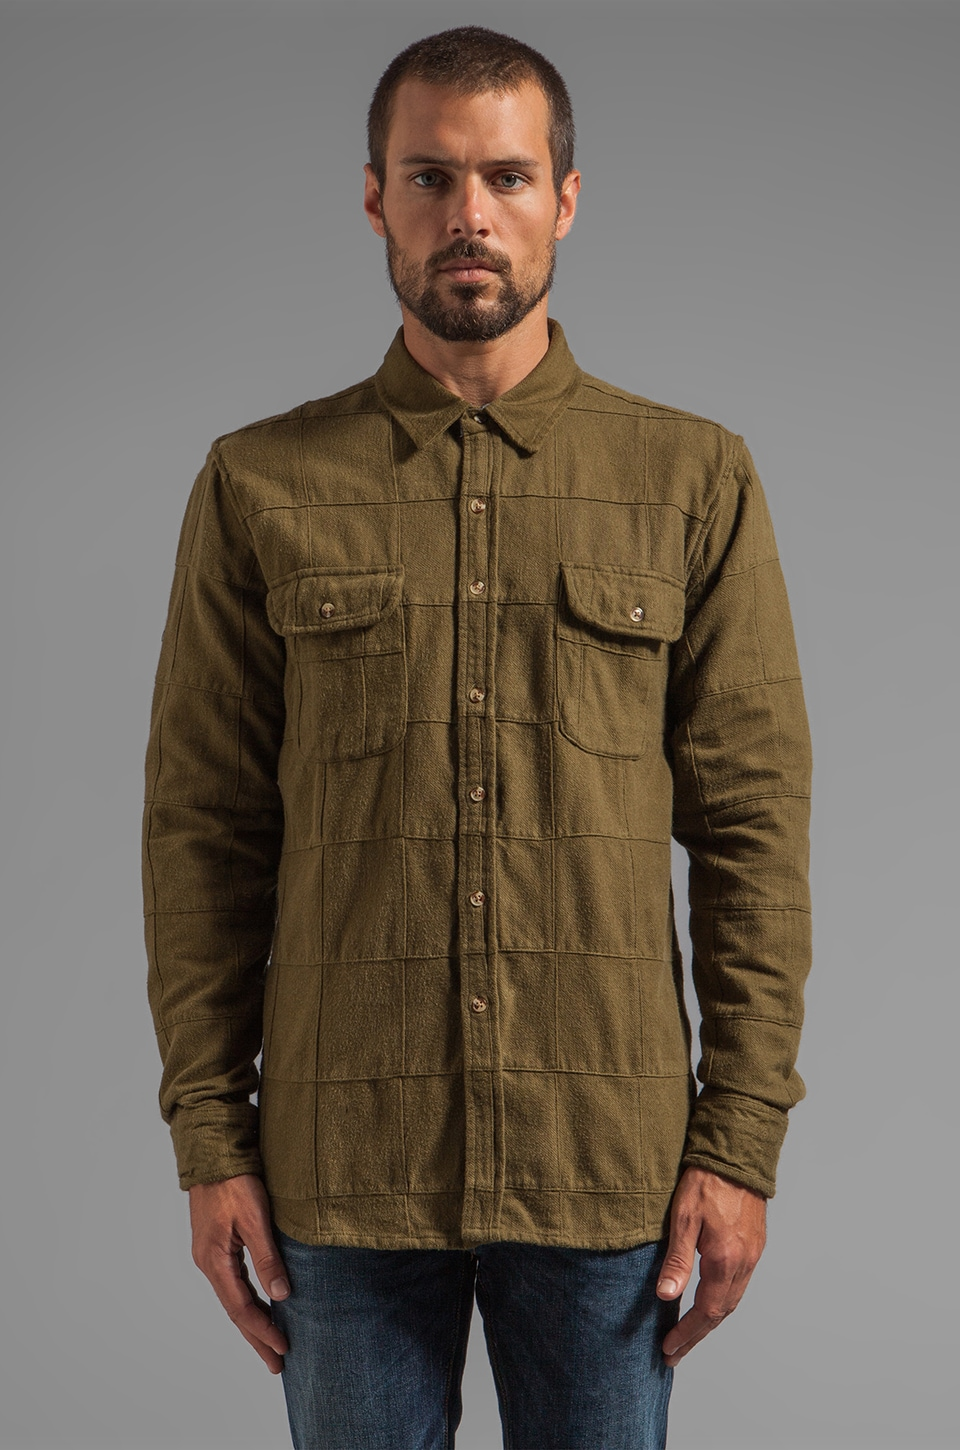 Obey Rowland L/S Flannel Shirt in Dark Olive